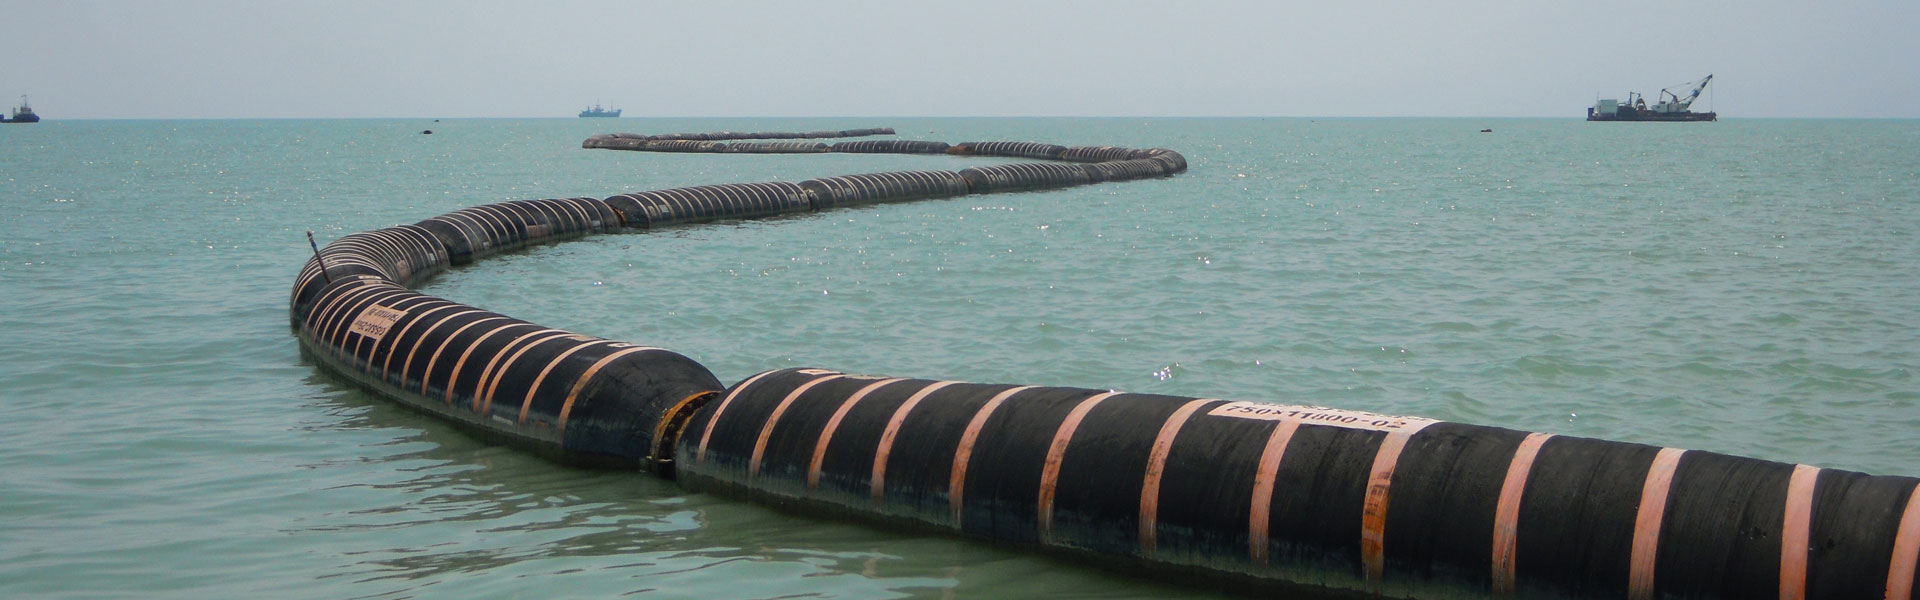 Dredging plays the important role in the goods transport via ship.